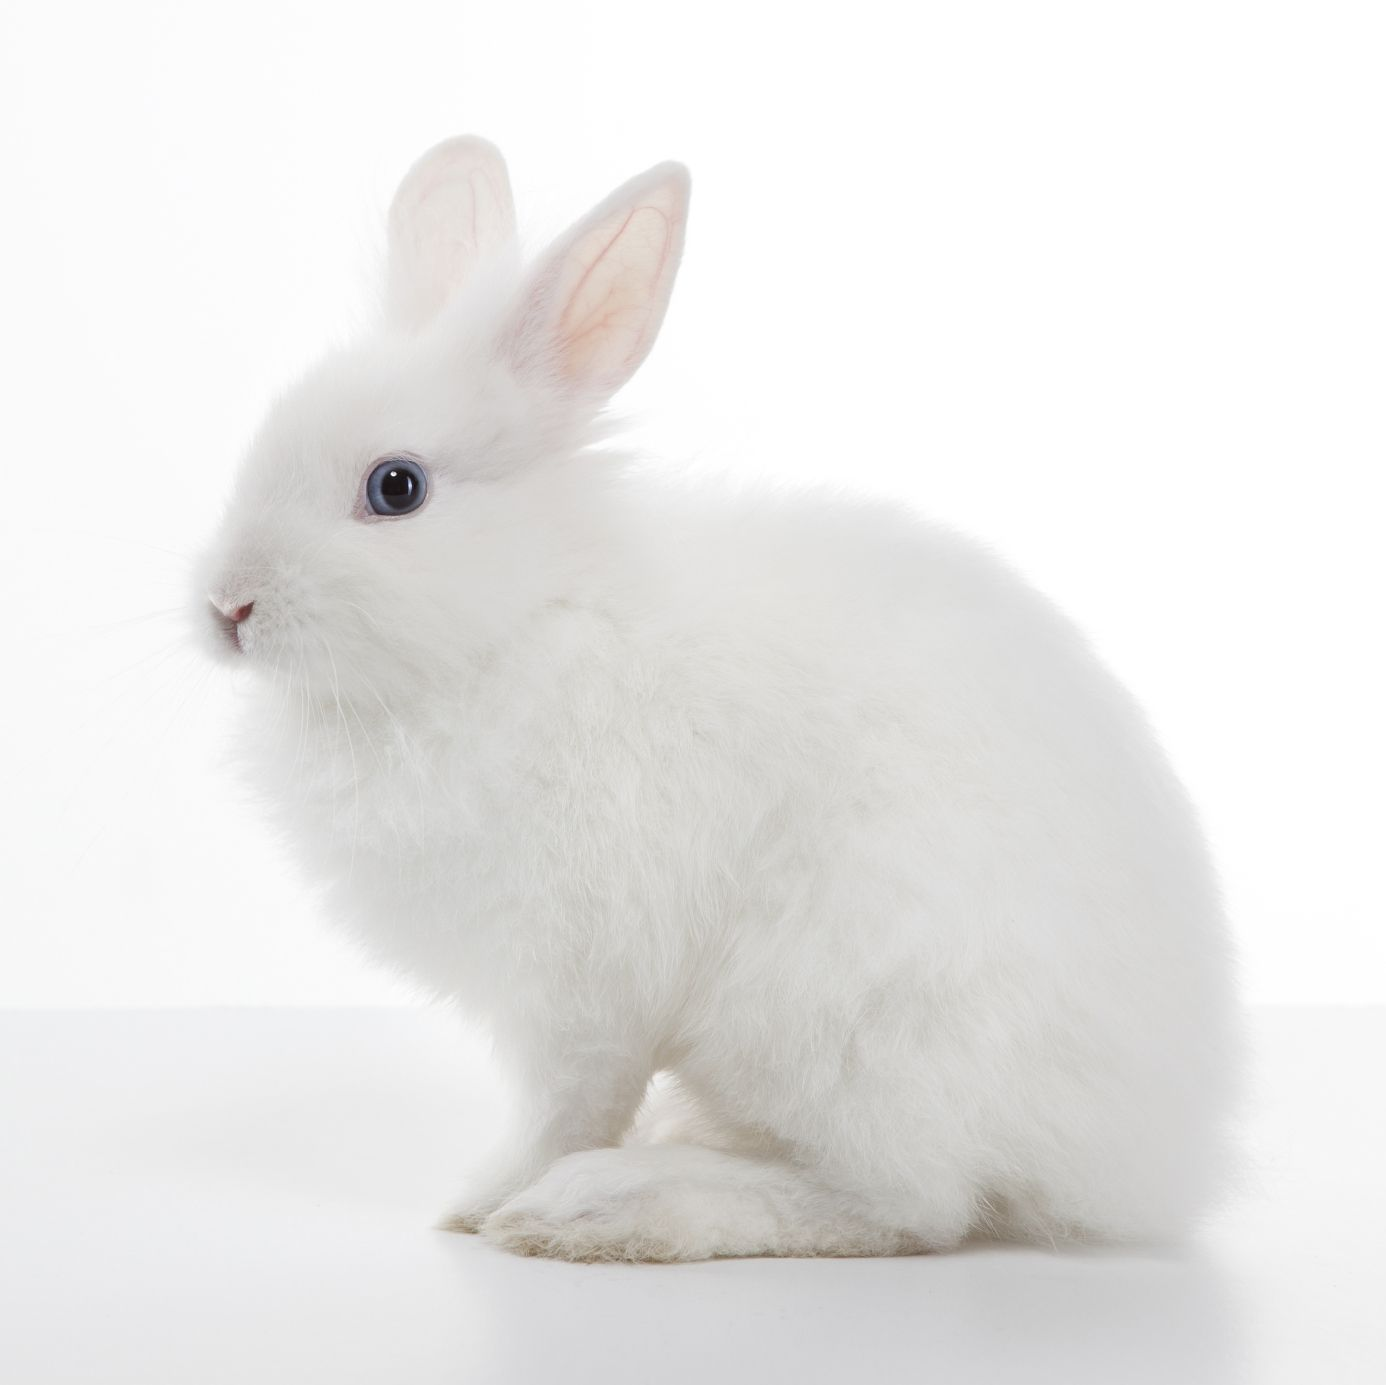 Cute White Baby Rabbit Best Wallpaper 19283 - Baltana |Awesome Baby White Bunnies